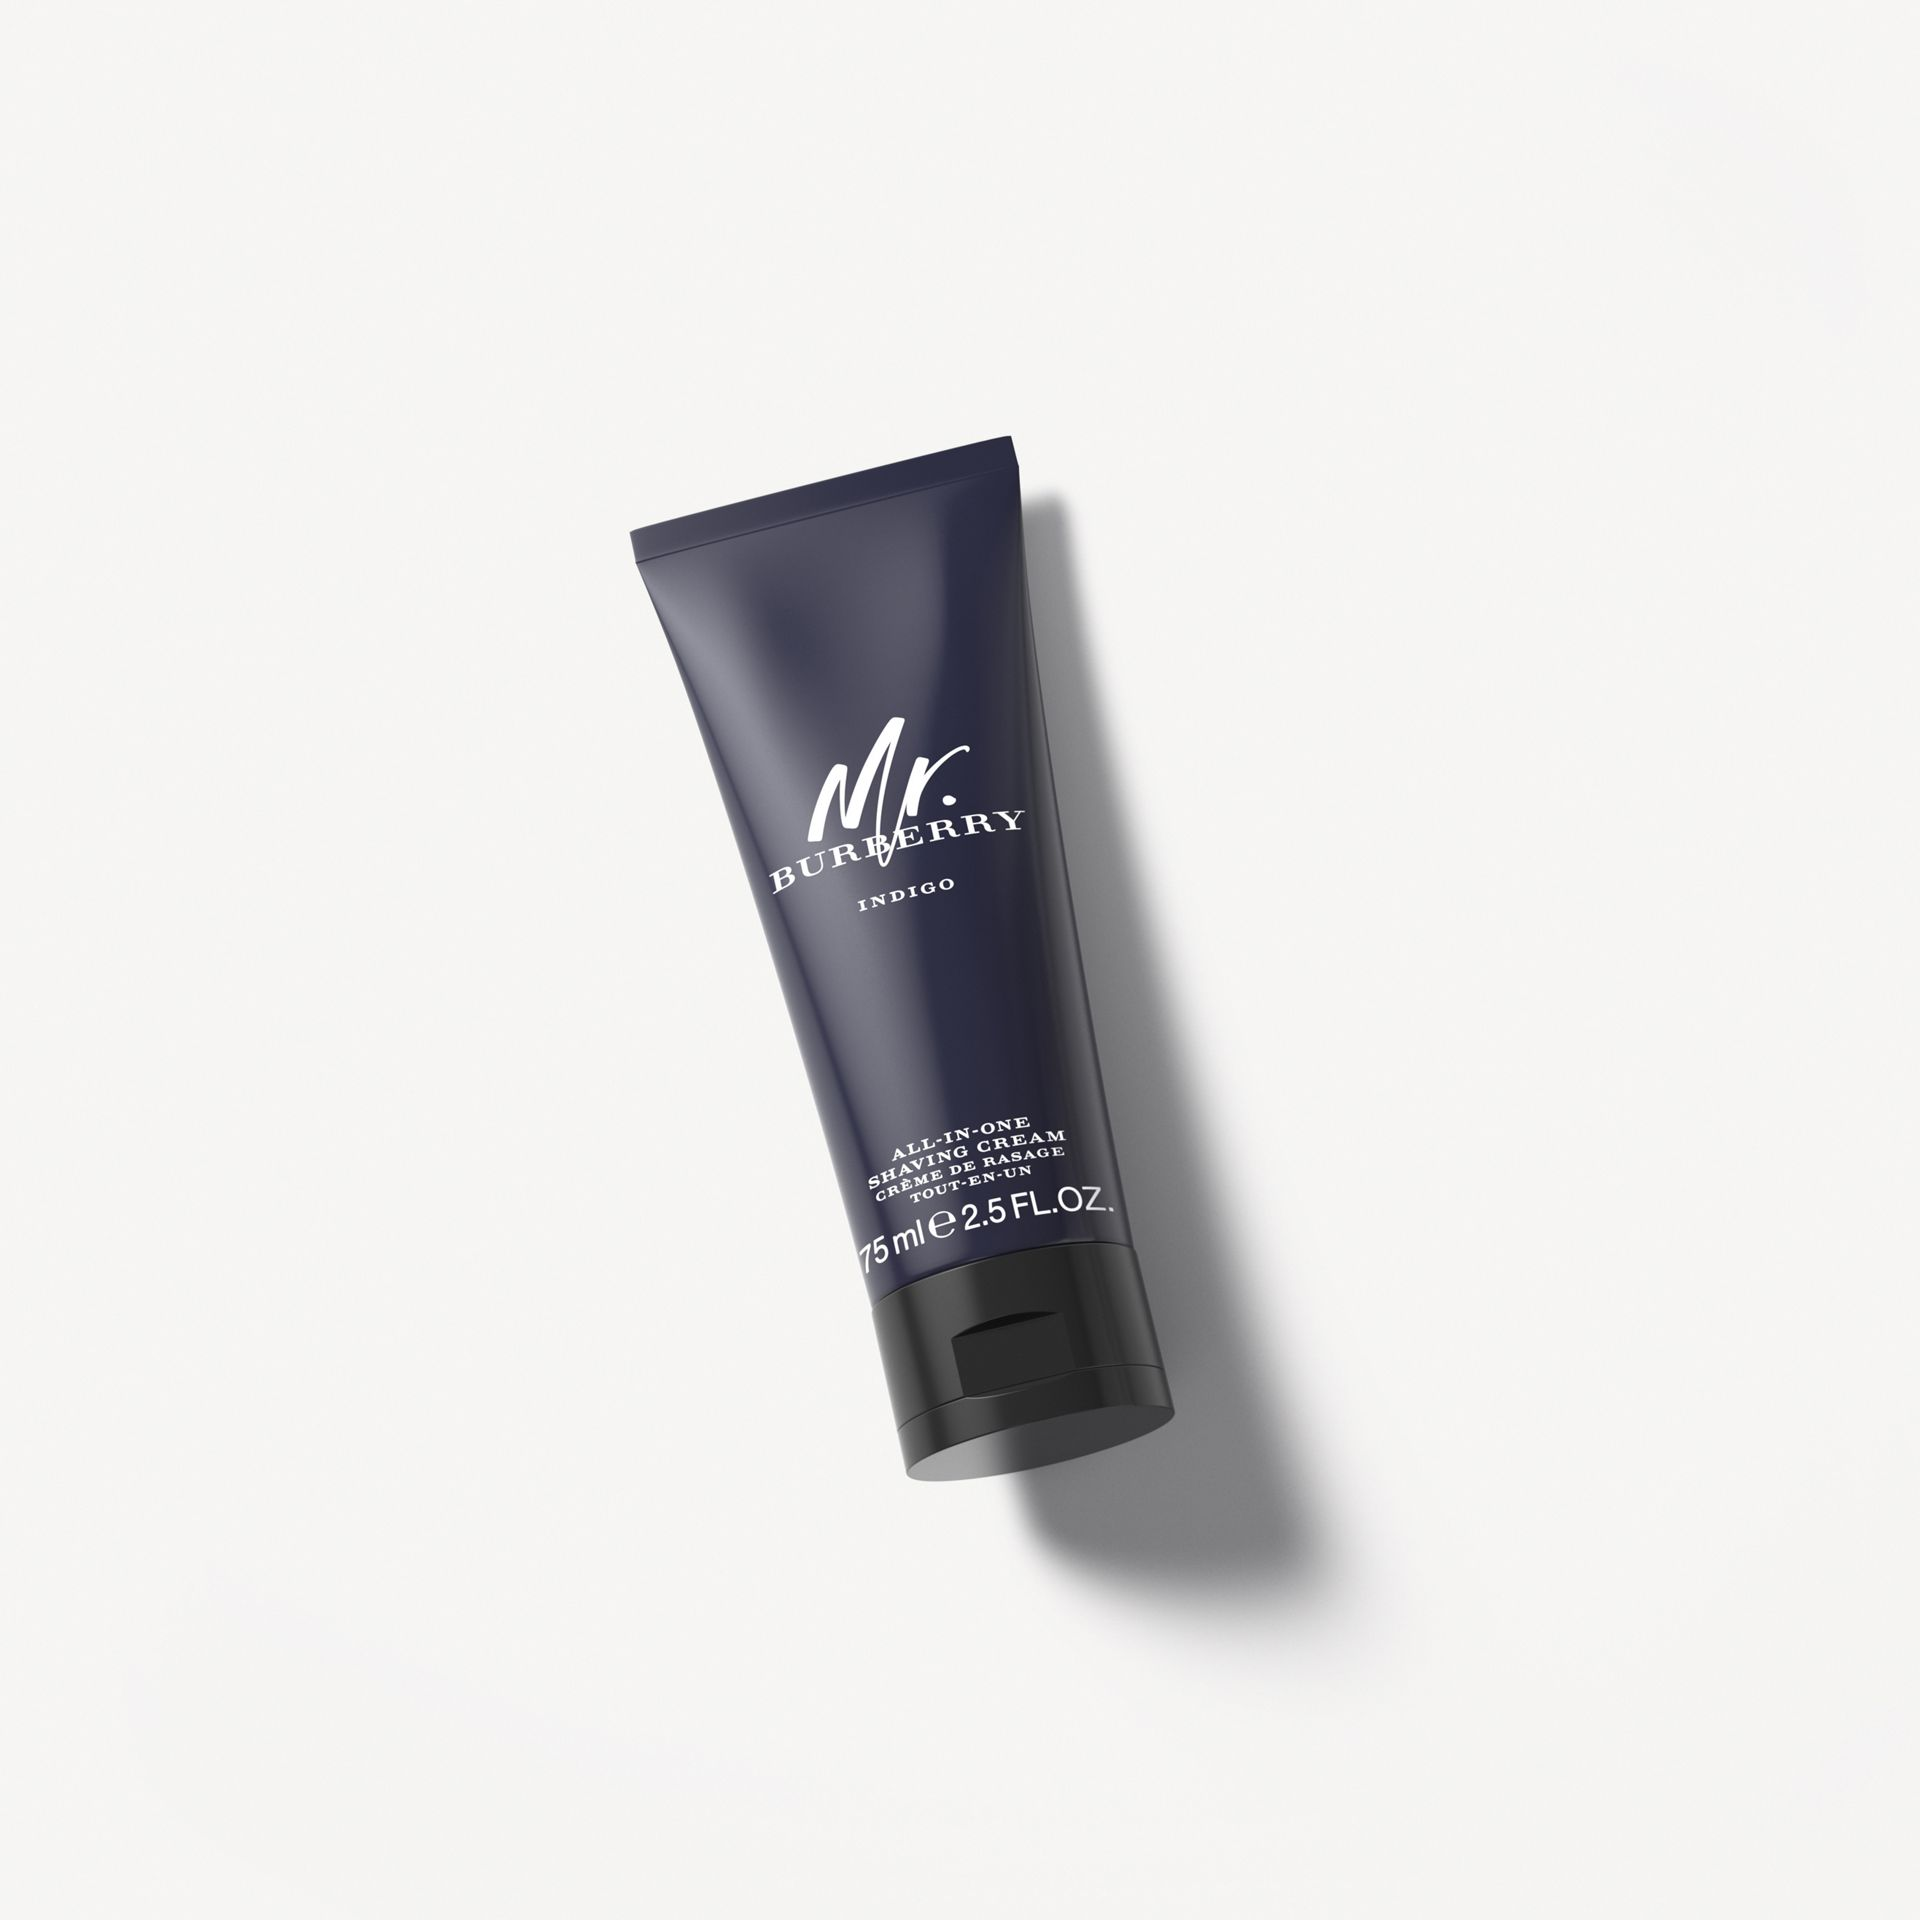 f5671f866967 Mr. Burberry Indigo All-In-One Shaving Cream 75ml - Men   Burberry ...